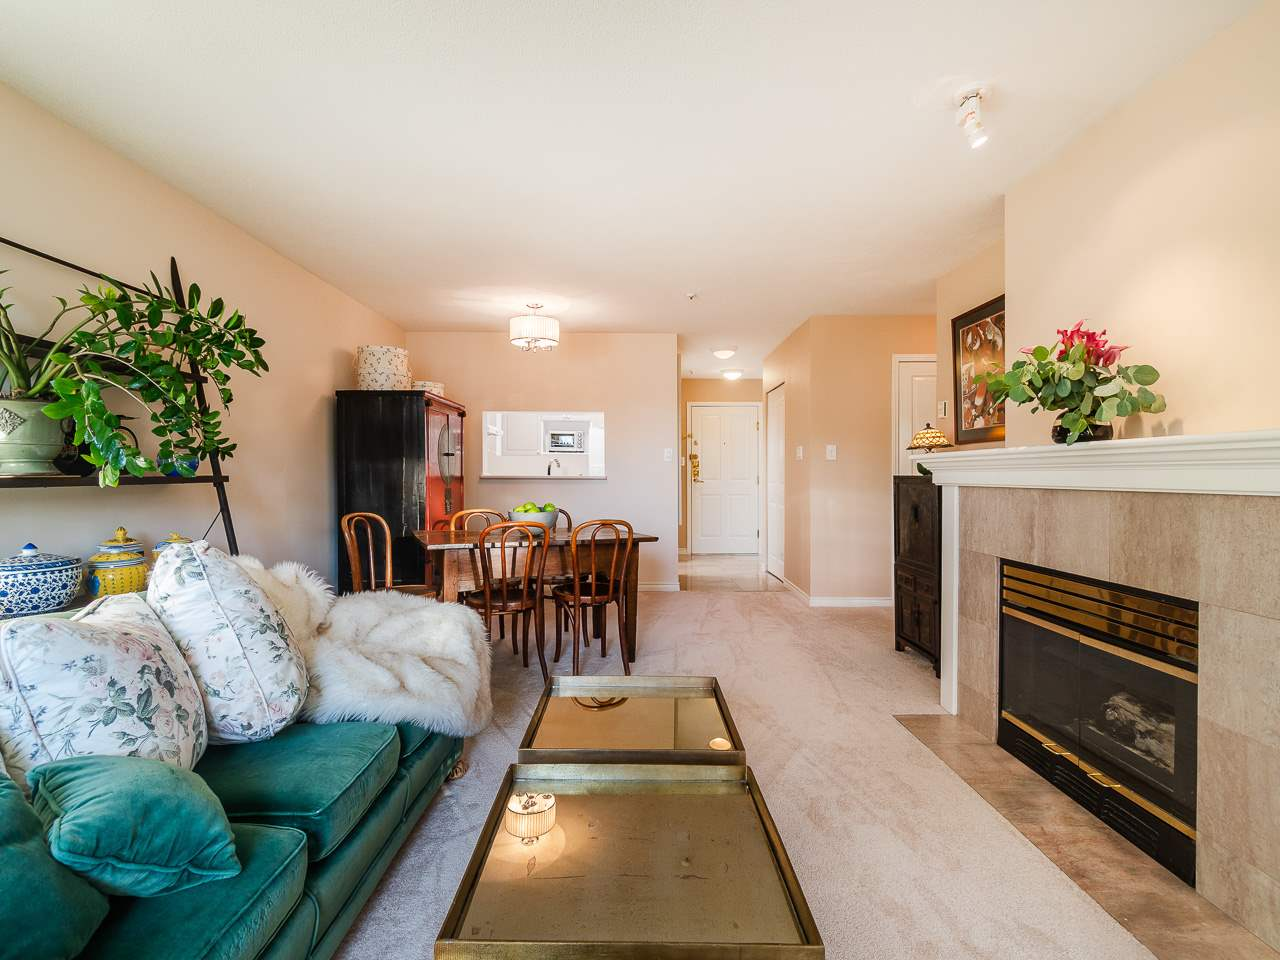 306 2105 W 42ND AVENUE - Kerrisdale Apartment/Condo for sale, 1 Bedroom (R2511504) - #11